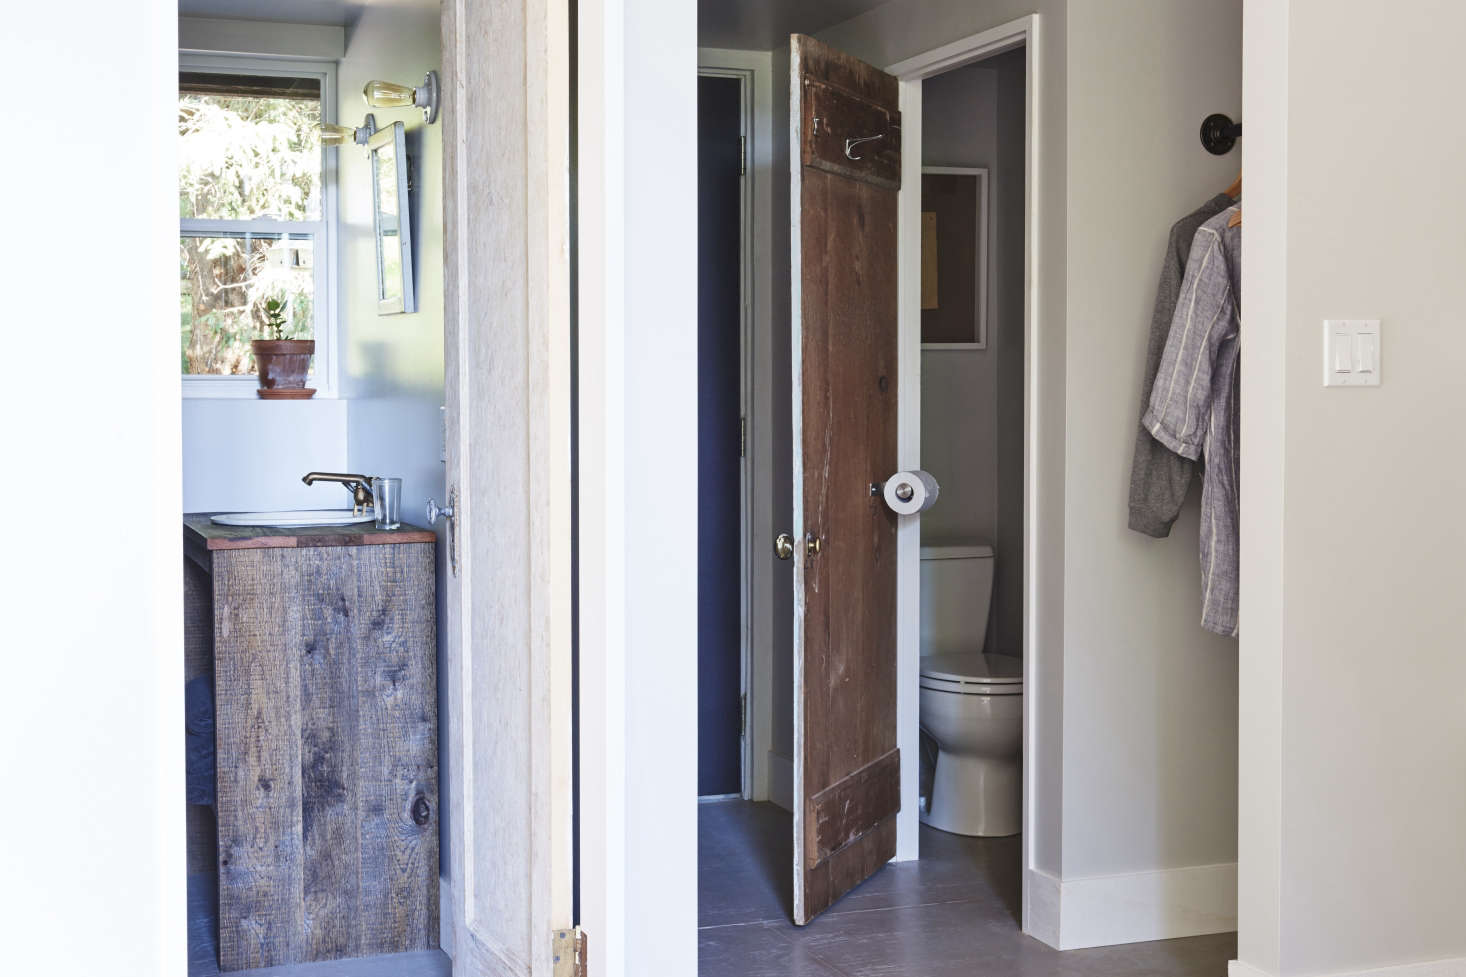 Thebathroom suite with a reclaimed-wood vanity. In the WC, a space-savinghack: a toilet-paperholderaffixed to the door.